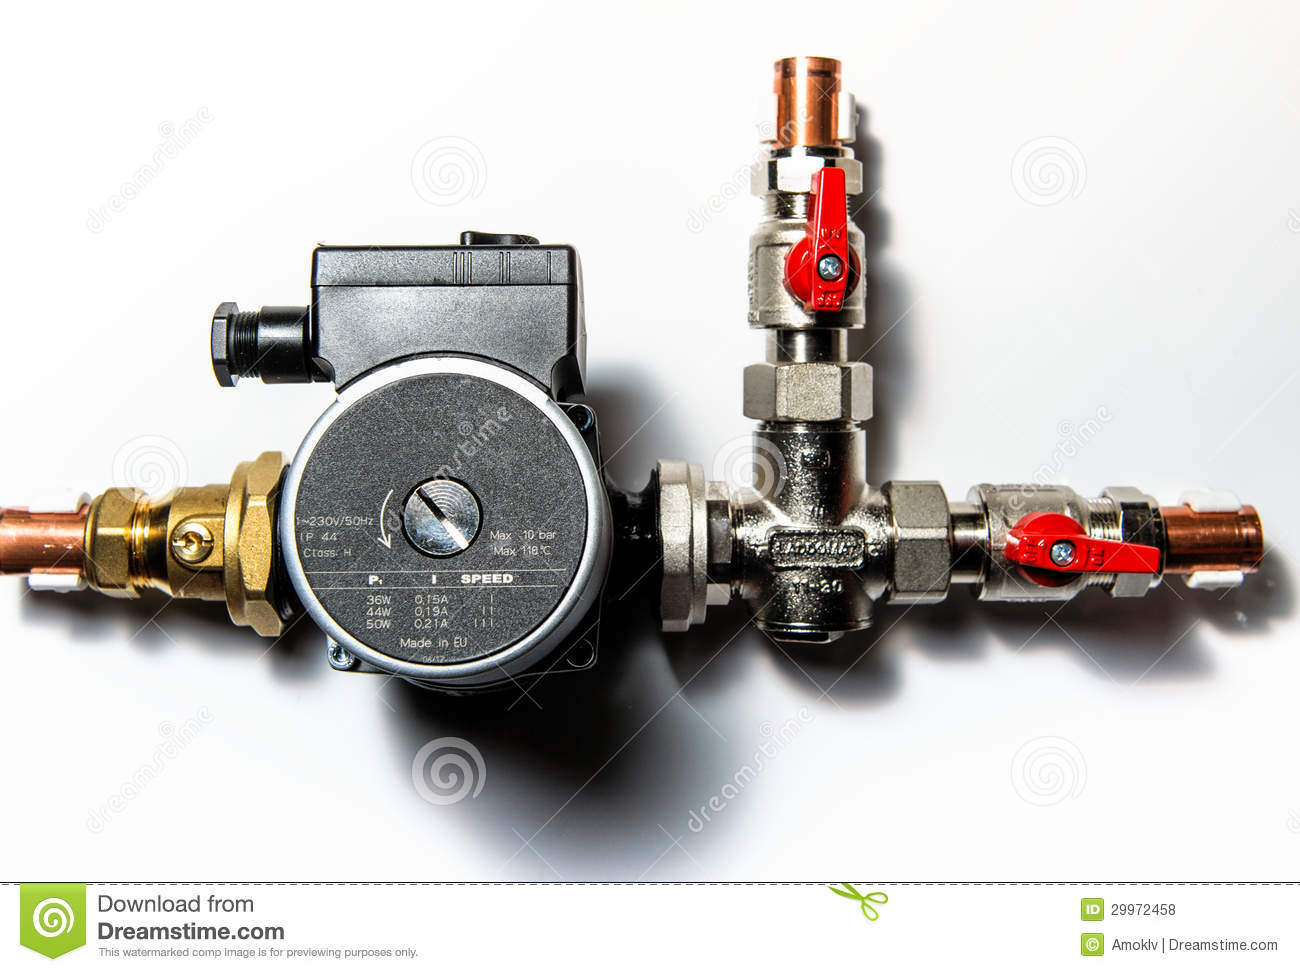 Central heating manifold